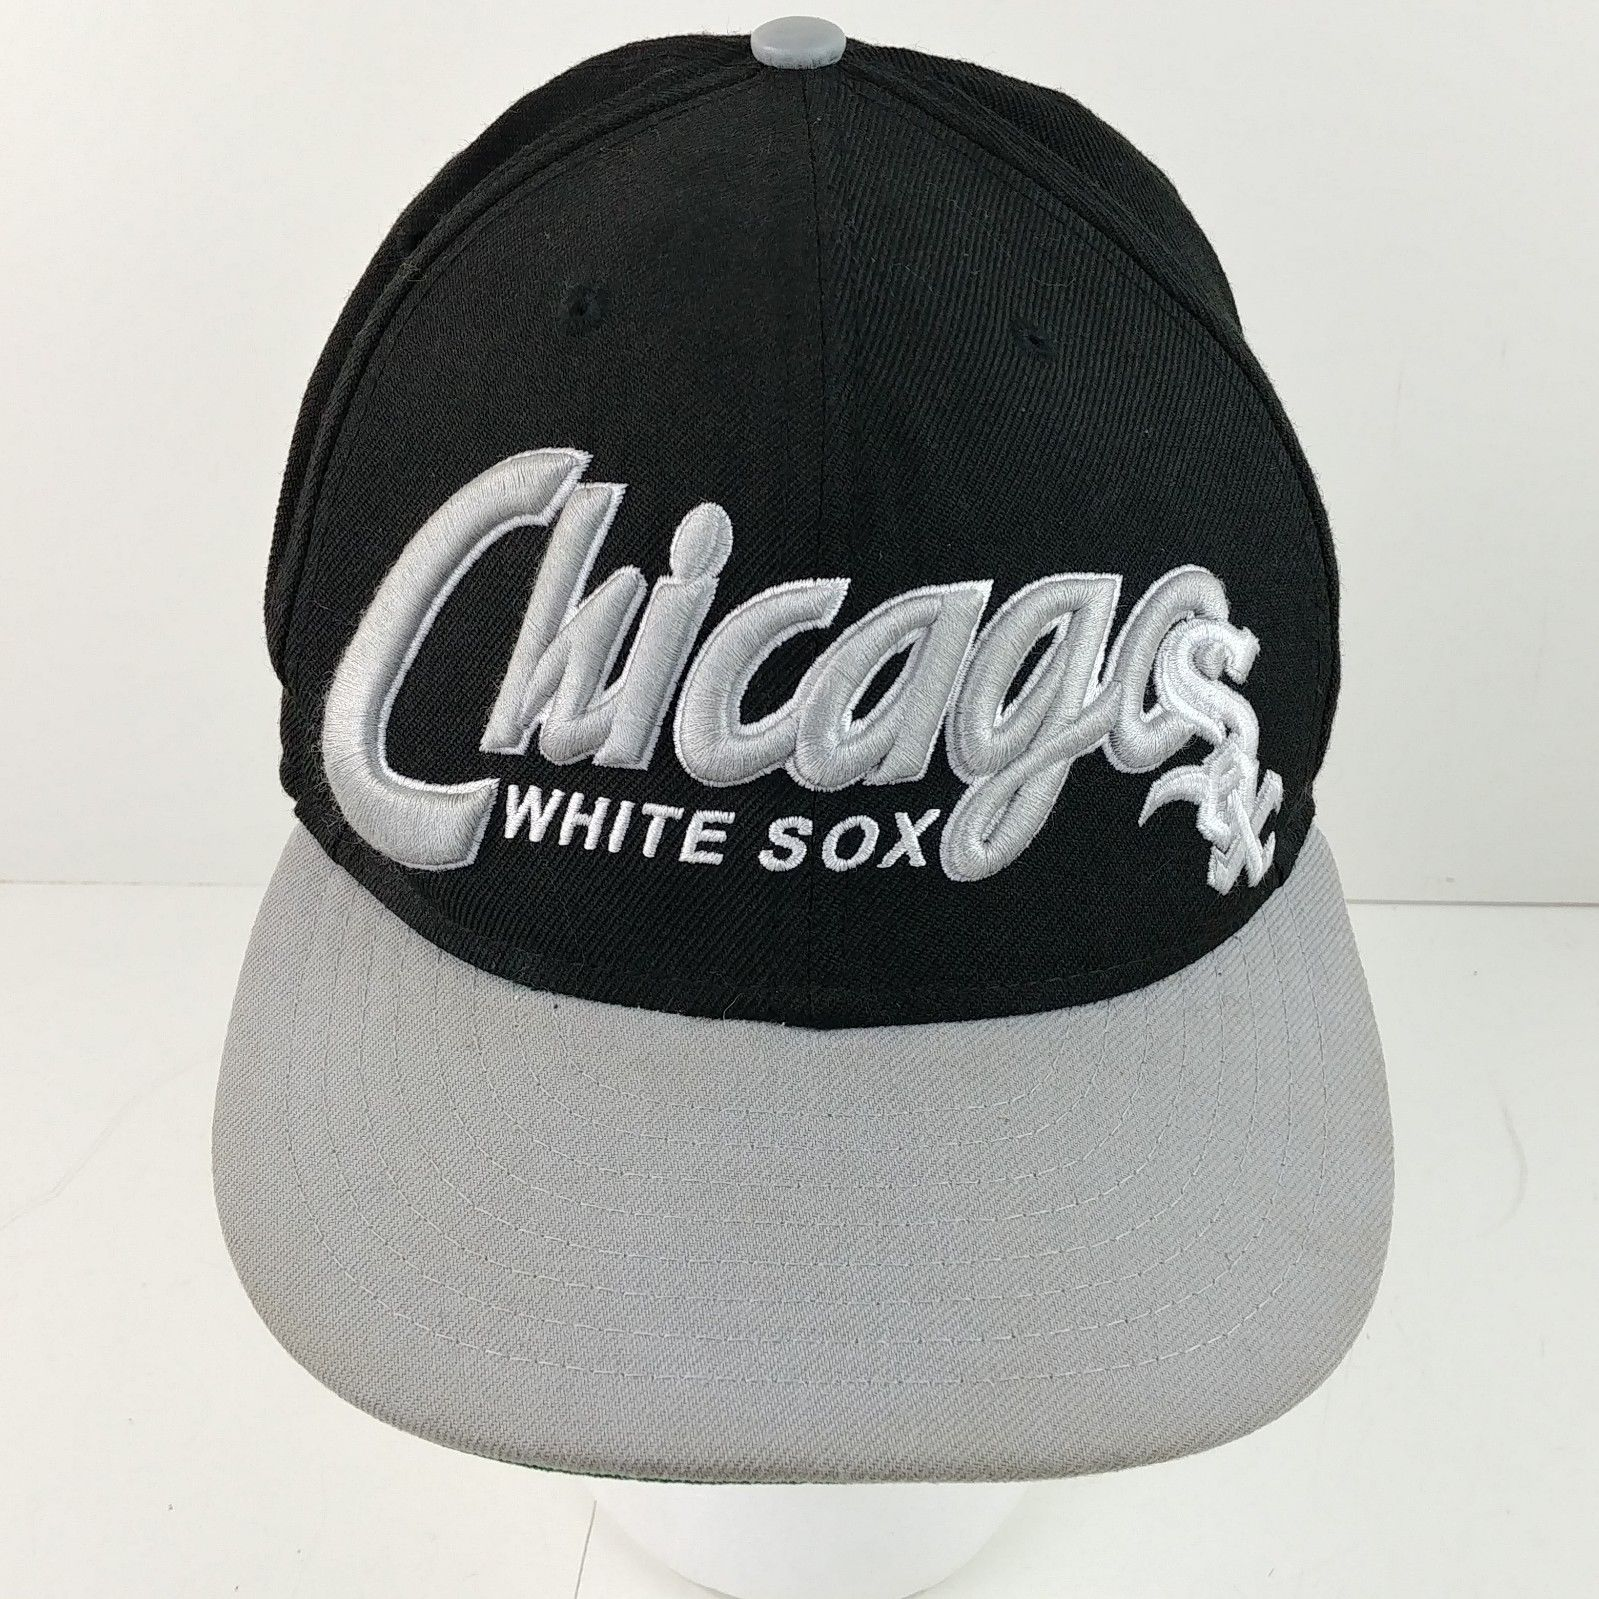 656427a75519a Chicago White Sox 9Fifty New Era Black Baseball Cap Hat Snapback ...